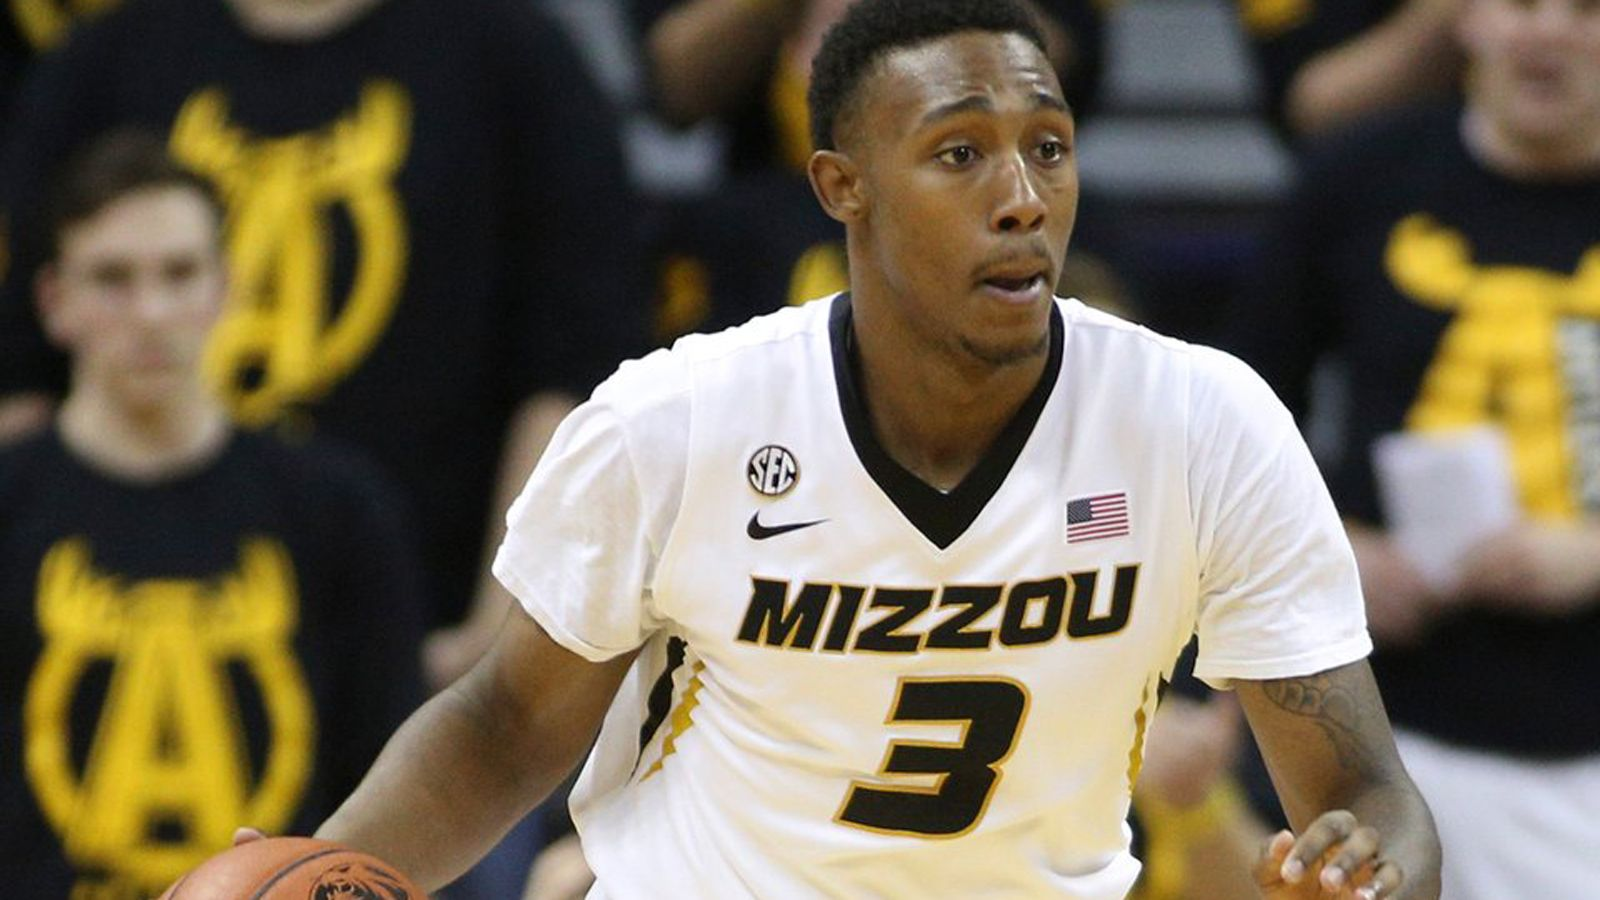 Mizzou drops game vs. No. 20 Arizona